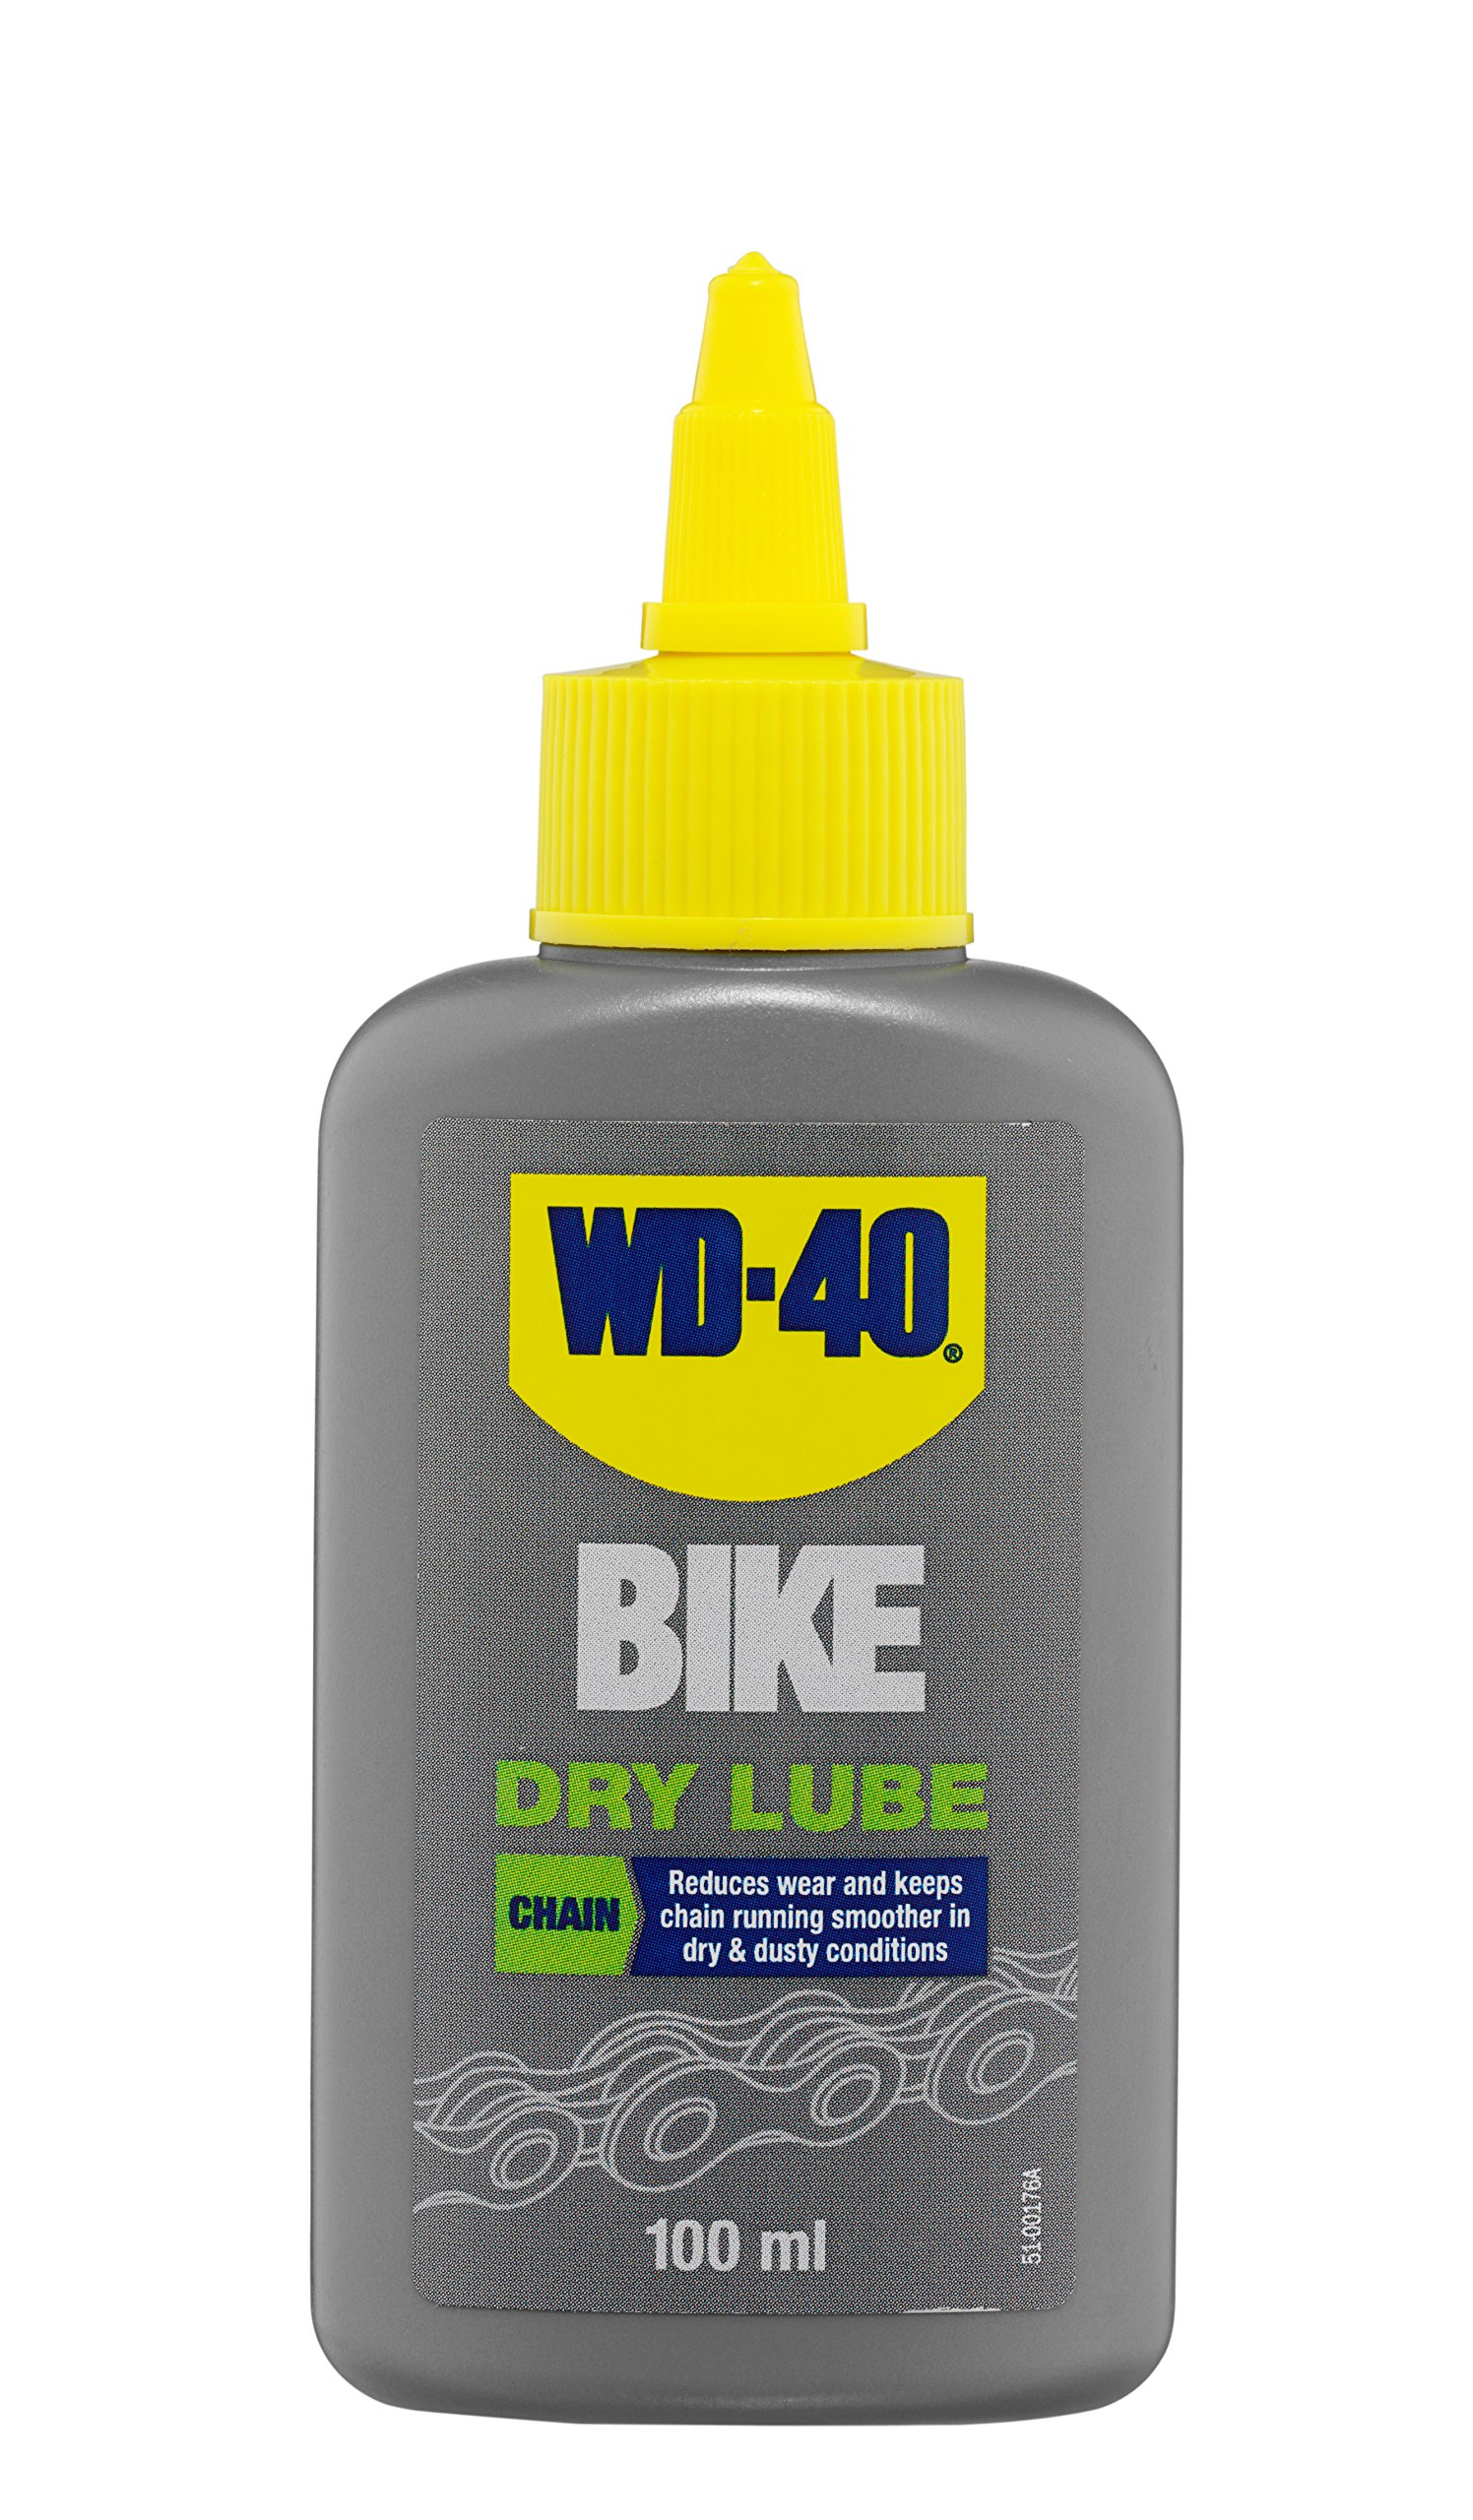 WD-40 Bike, Cycle Chain Lubricant Dry & Dusty Conditions, 100 ml